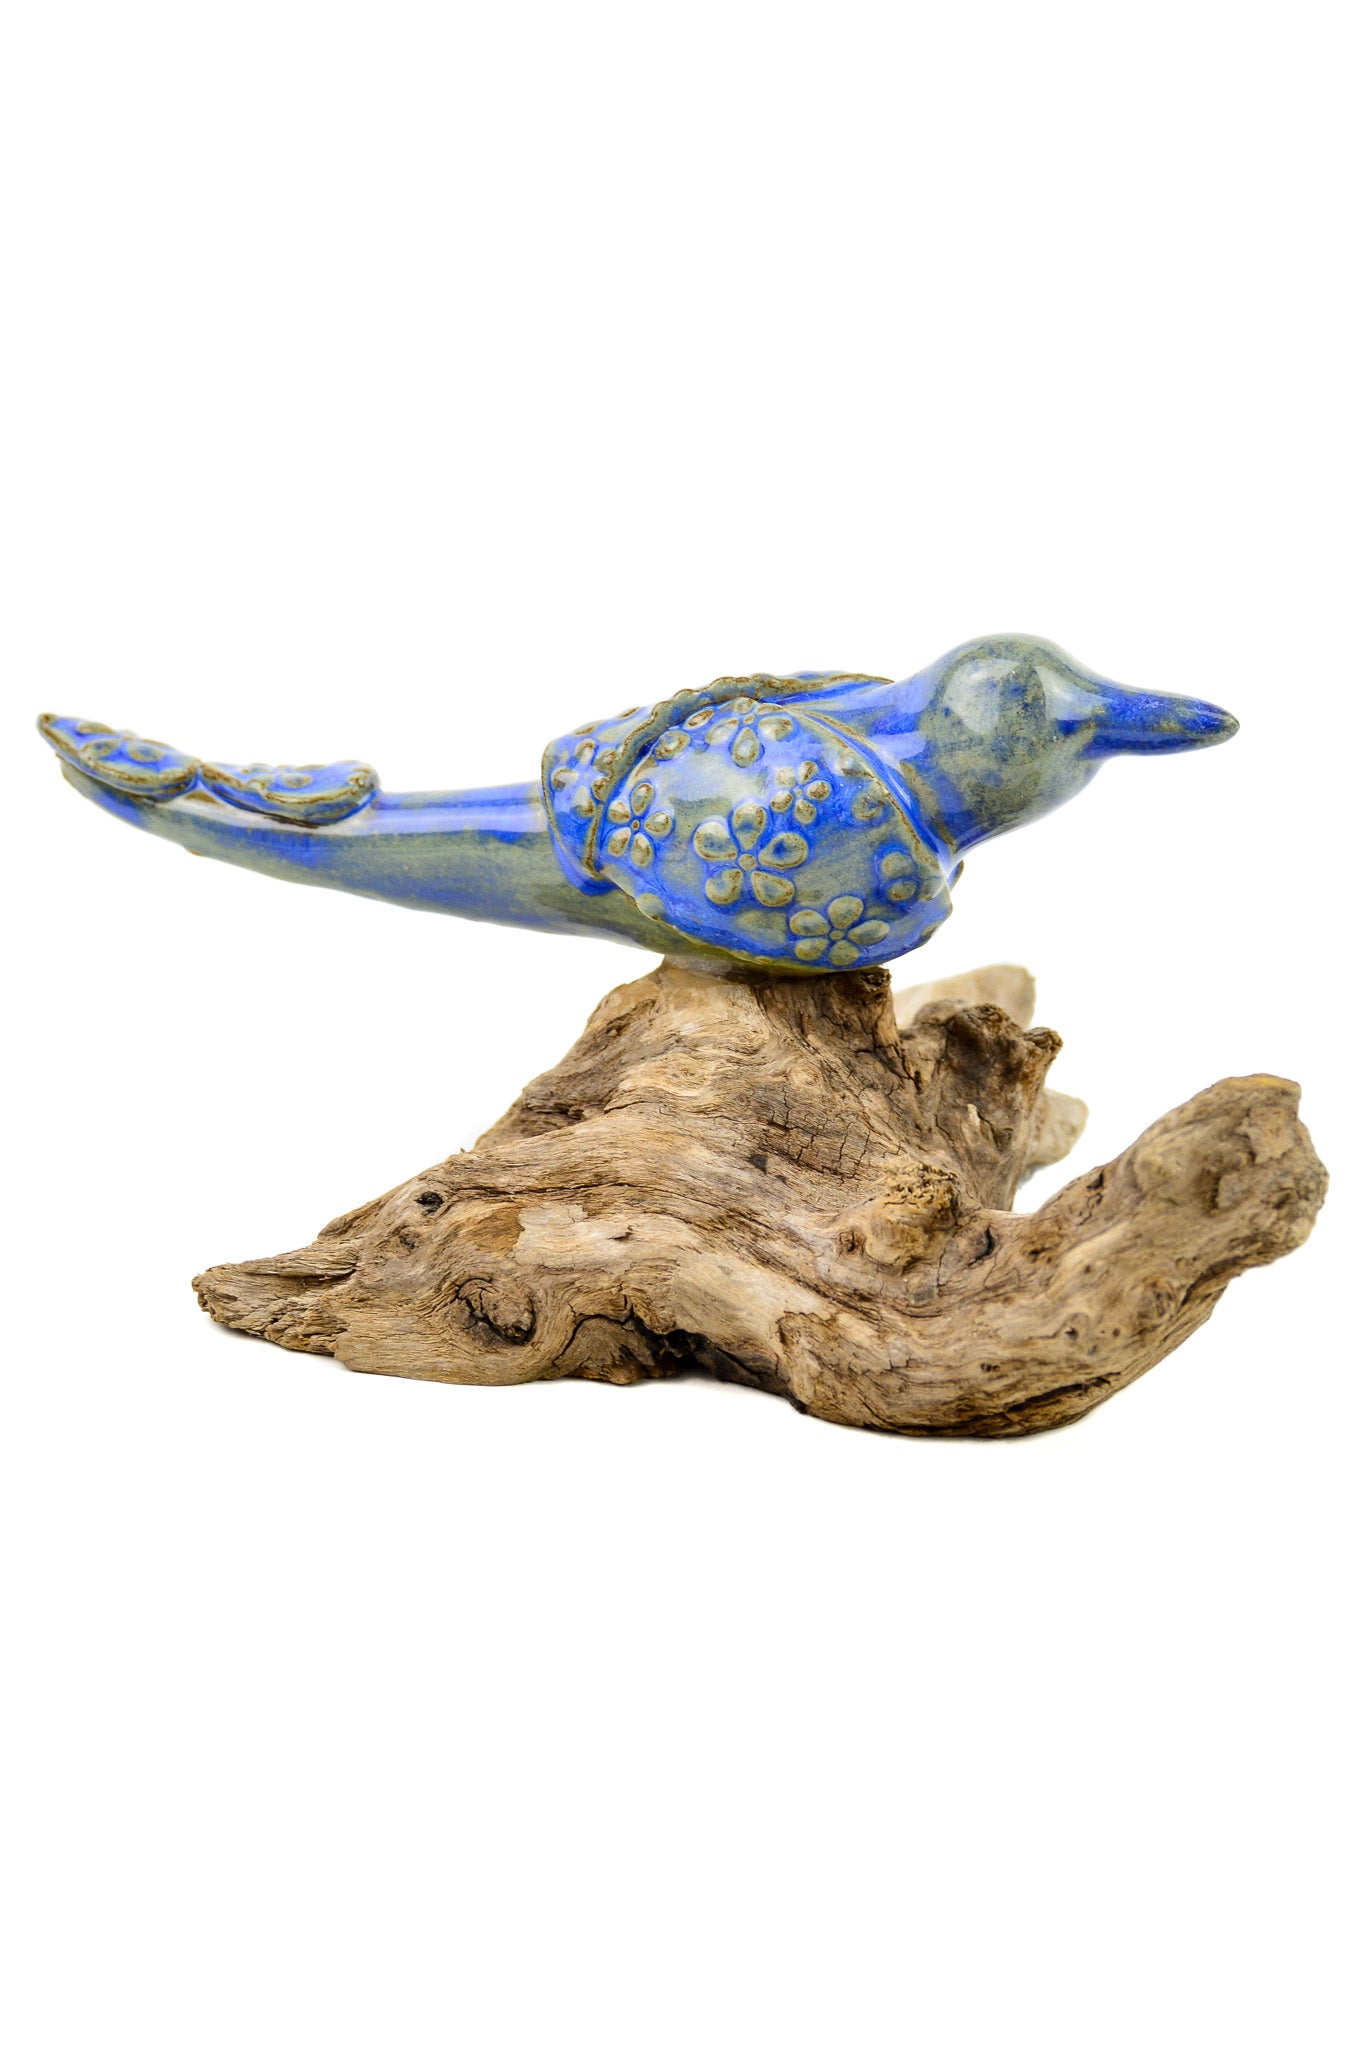 Ceramic Bird on Driftwood